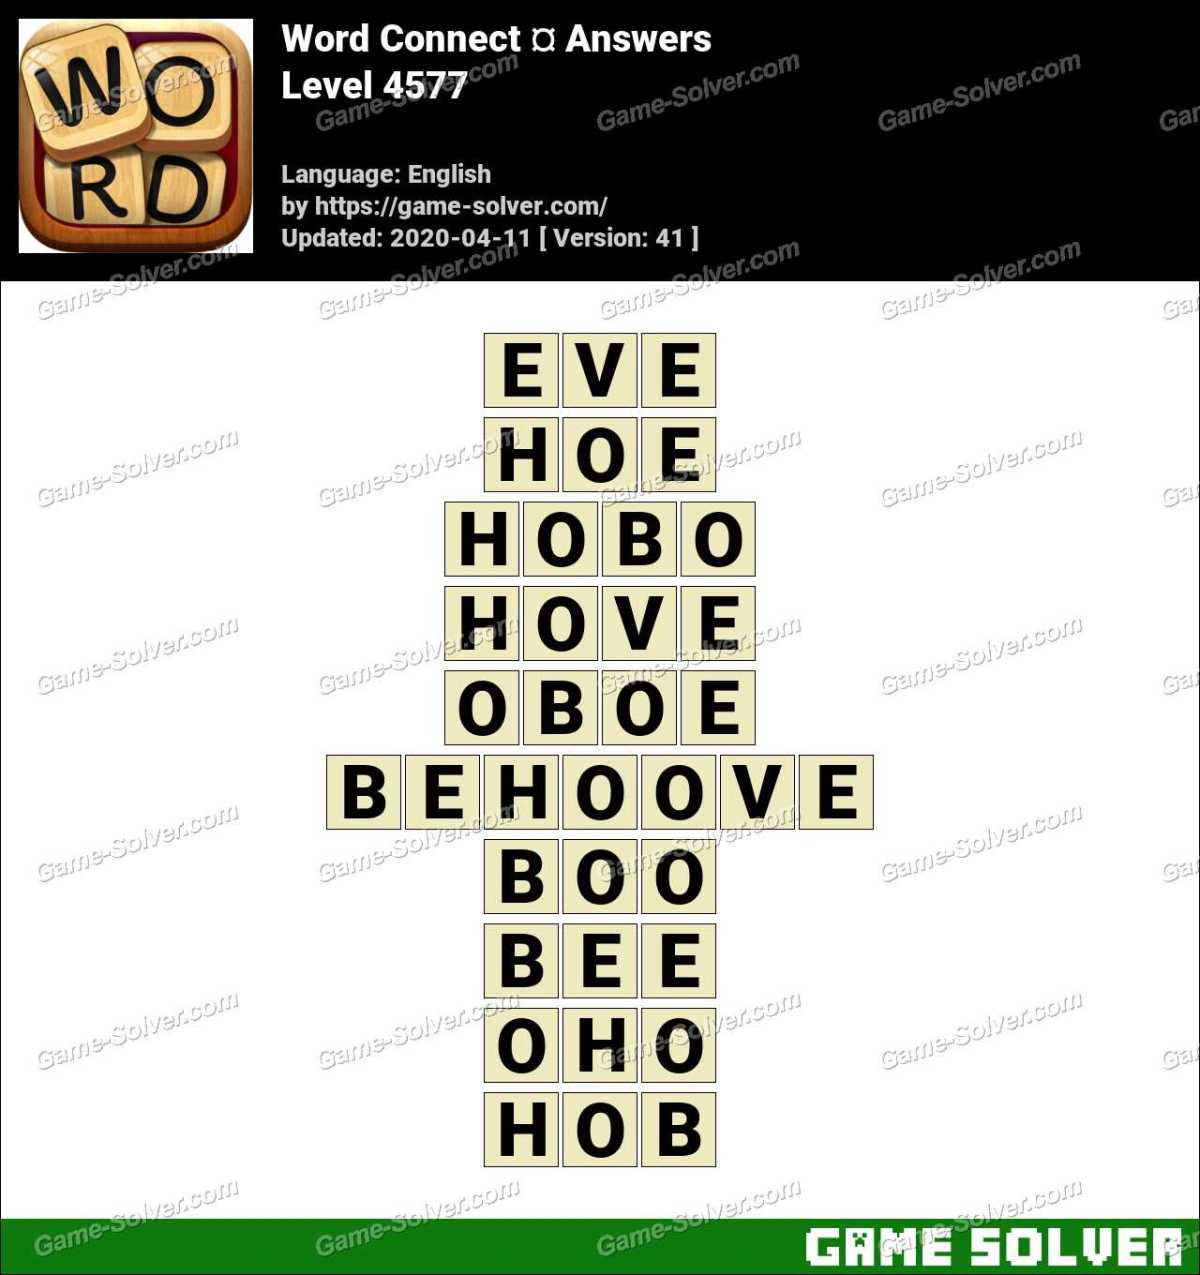 Word Connect Level 4577 Answers